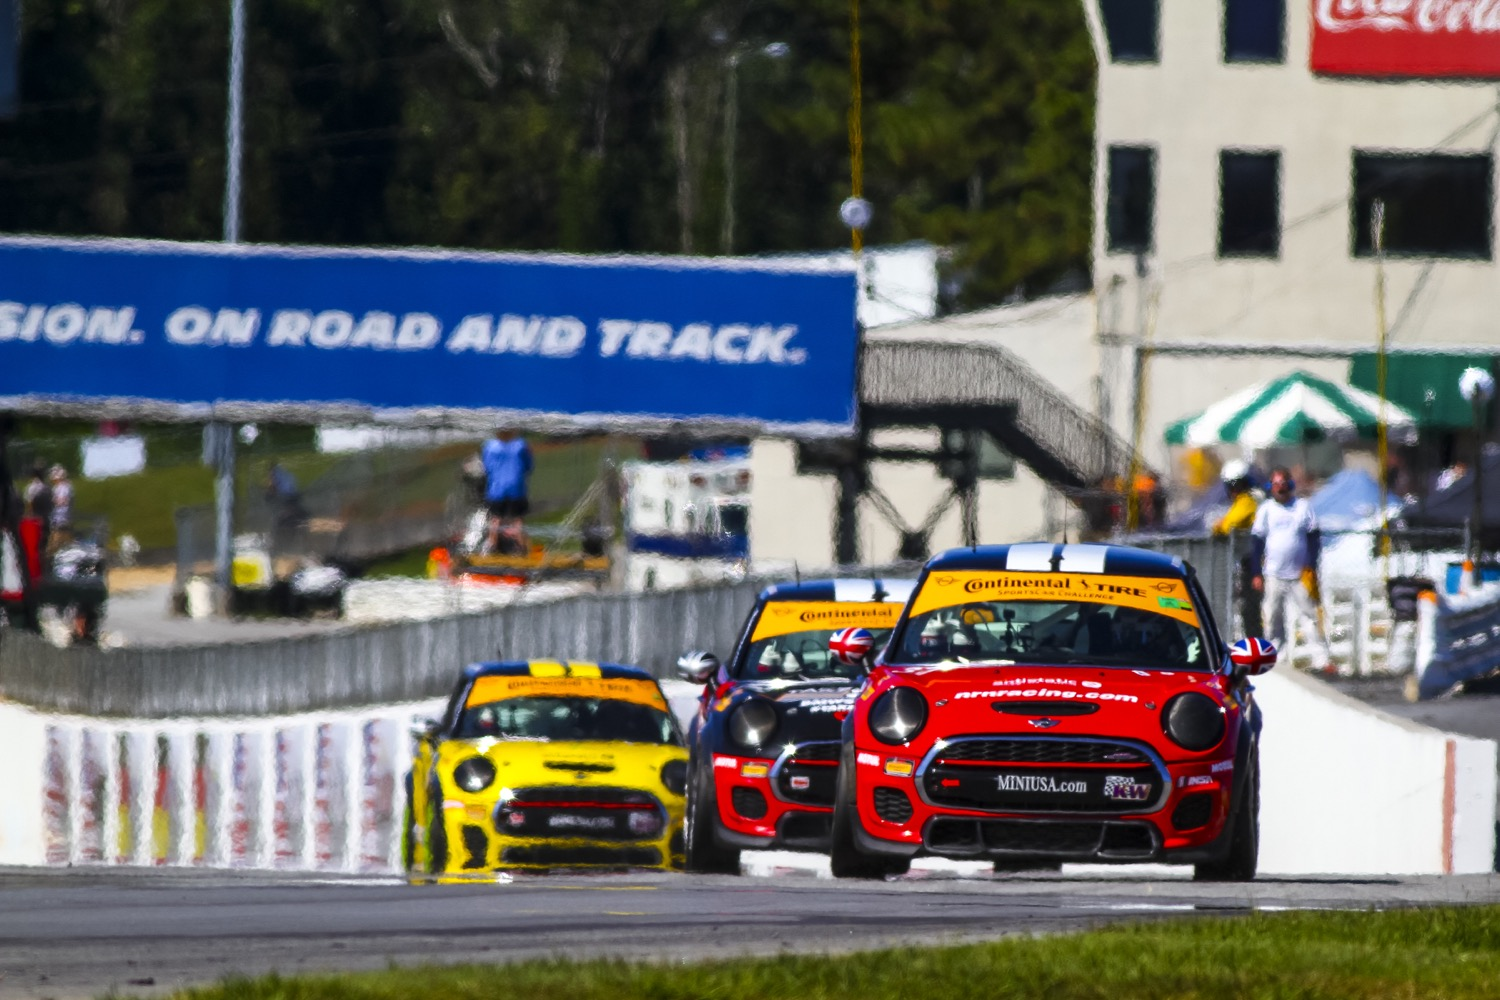 MINI JOHN COOPER WORKS TEAM TO ENTER 2019 SRO TC AMERICA RACE SERIES